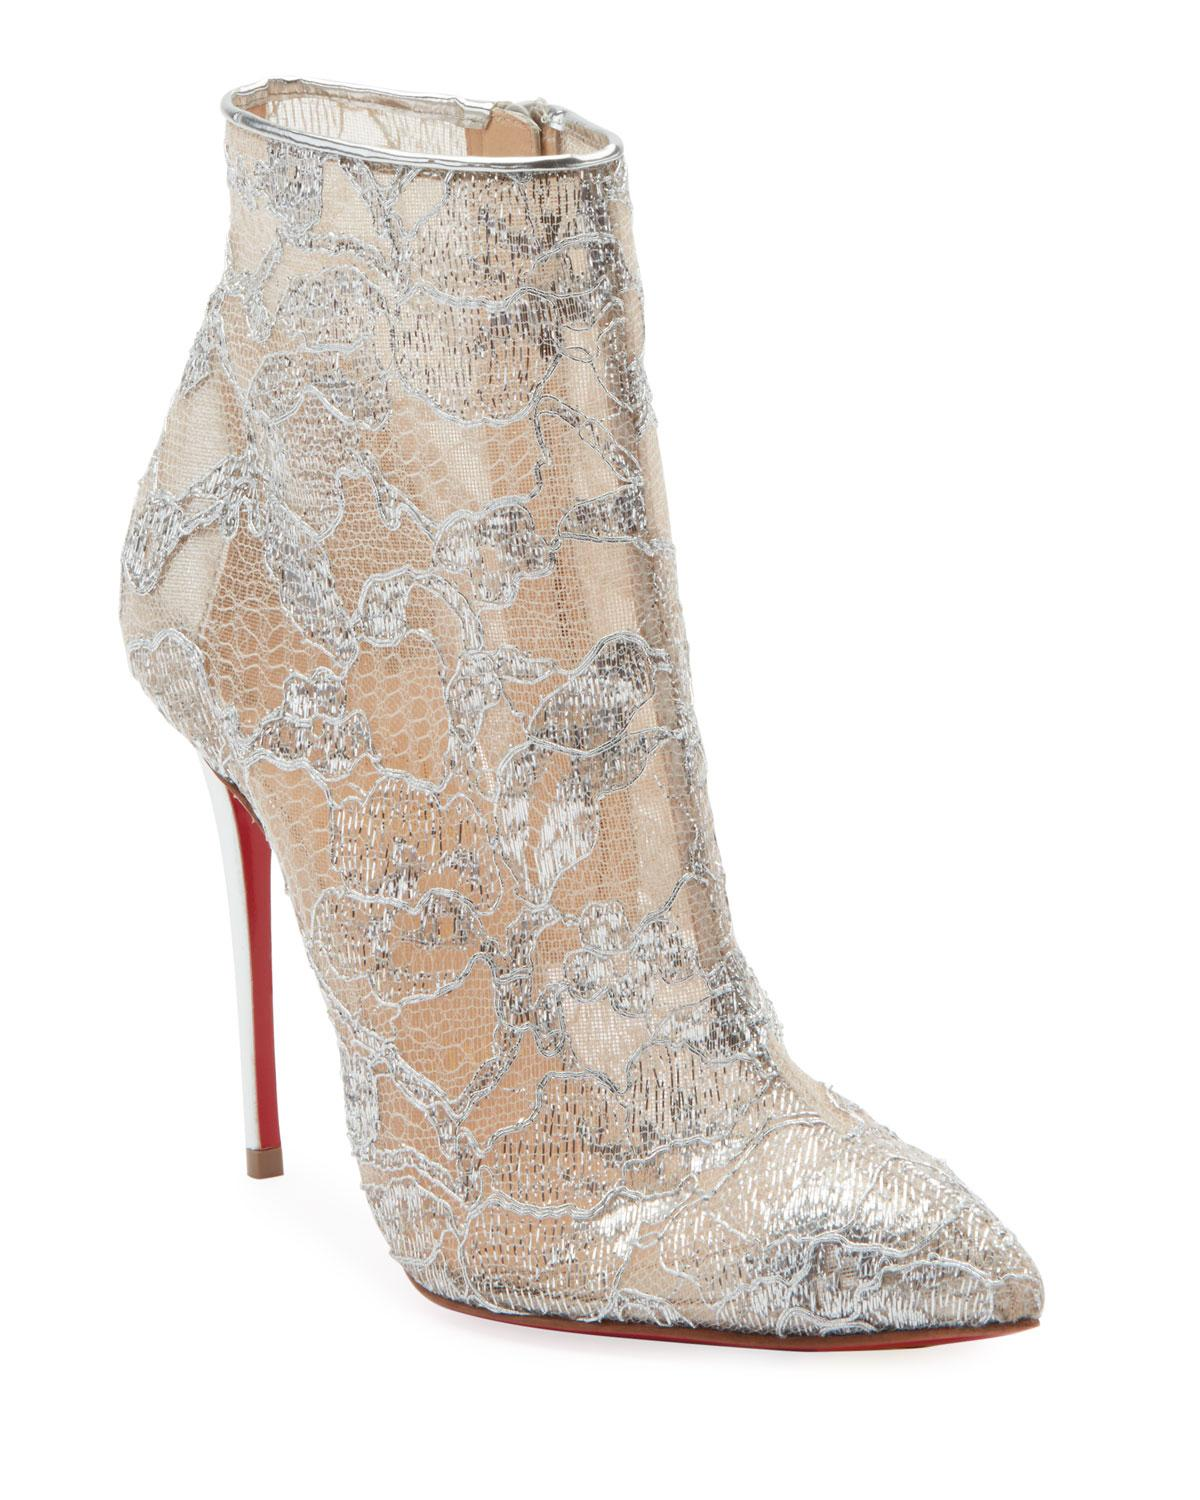 6192d52c388e Lyst - Christian Louboutin Gipsybootie Metallic Lace Red Sole Ankle ...